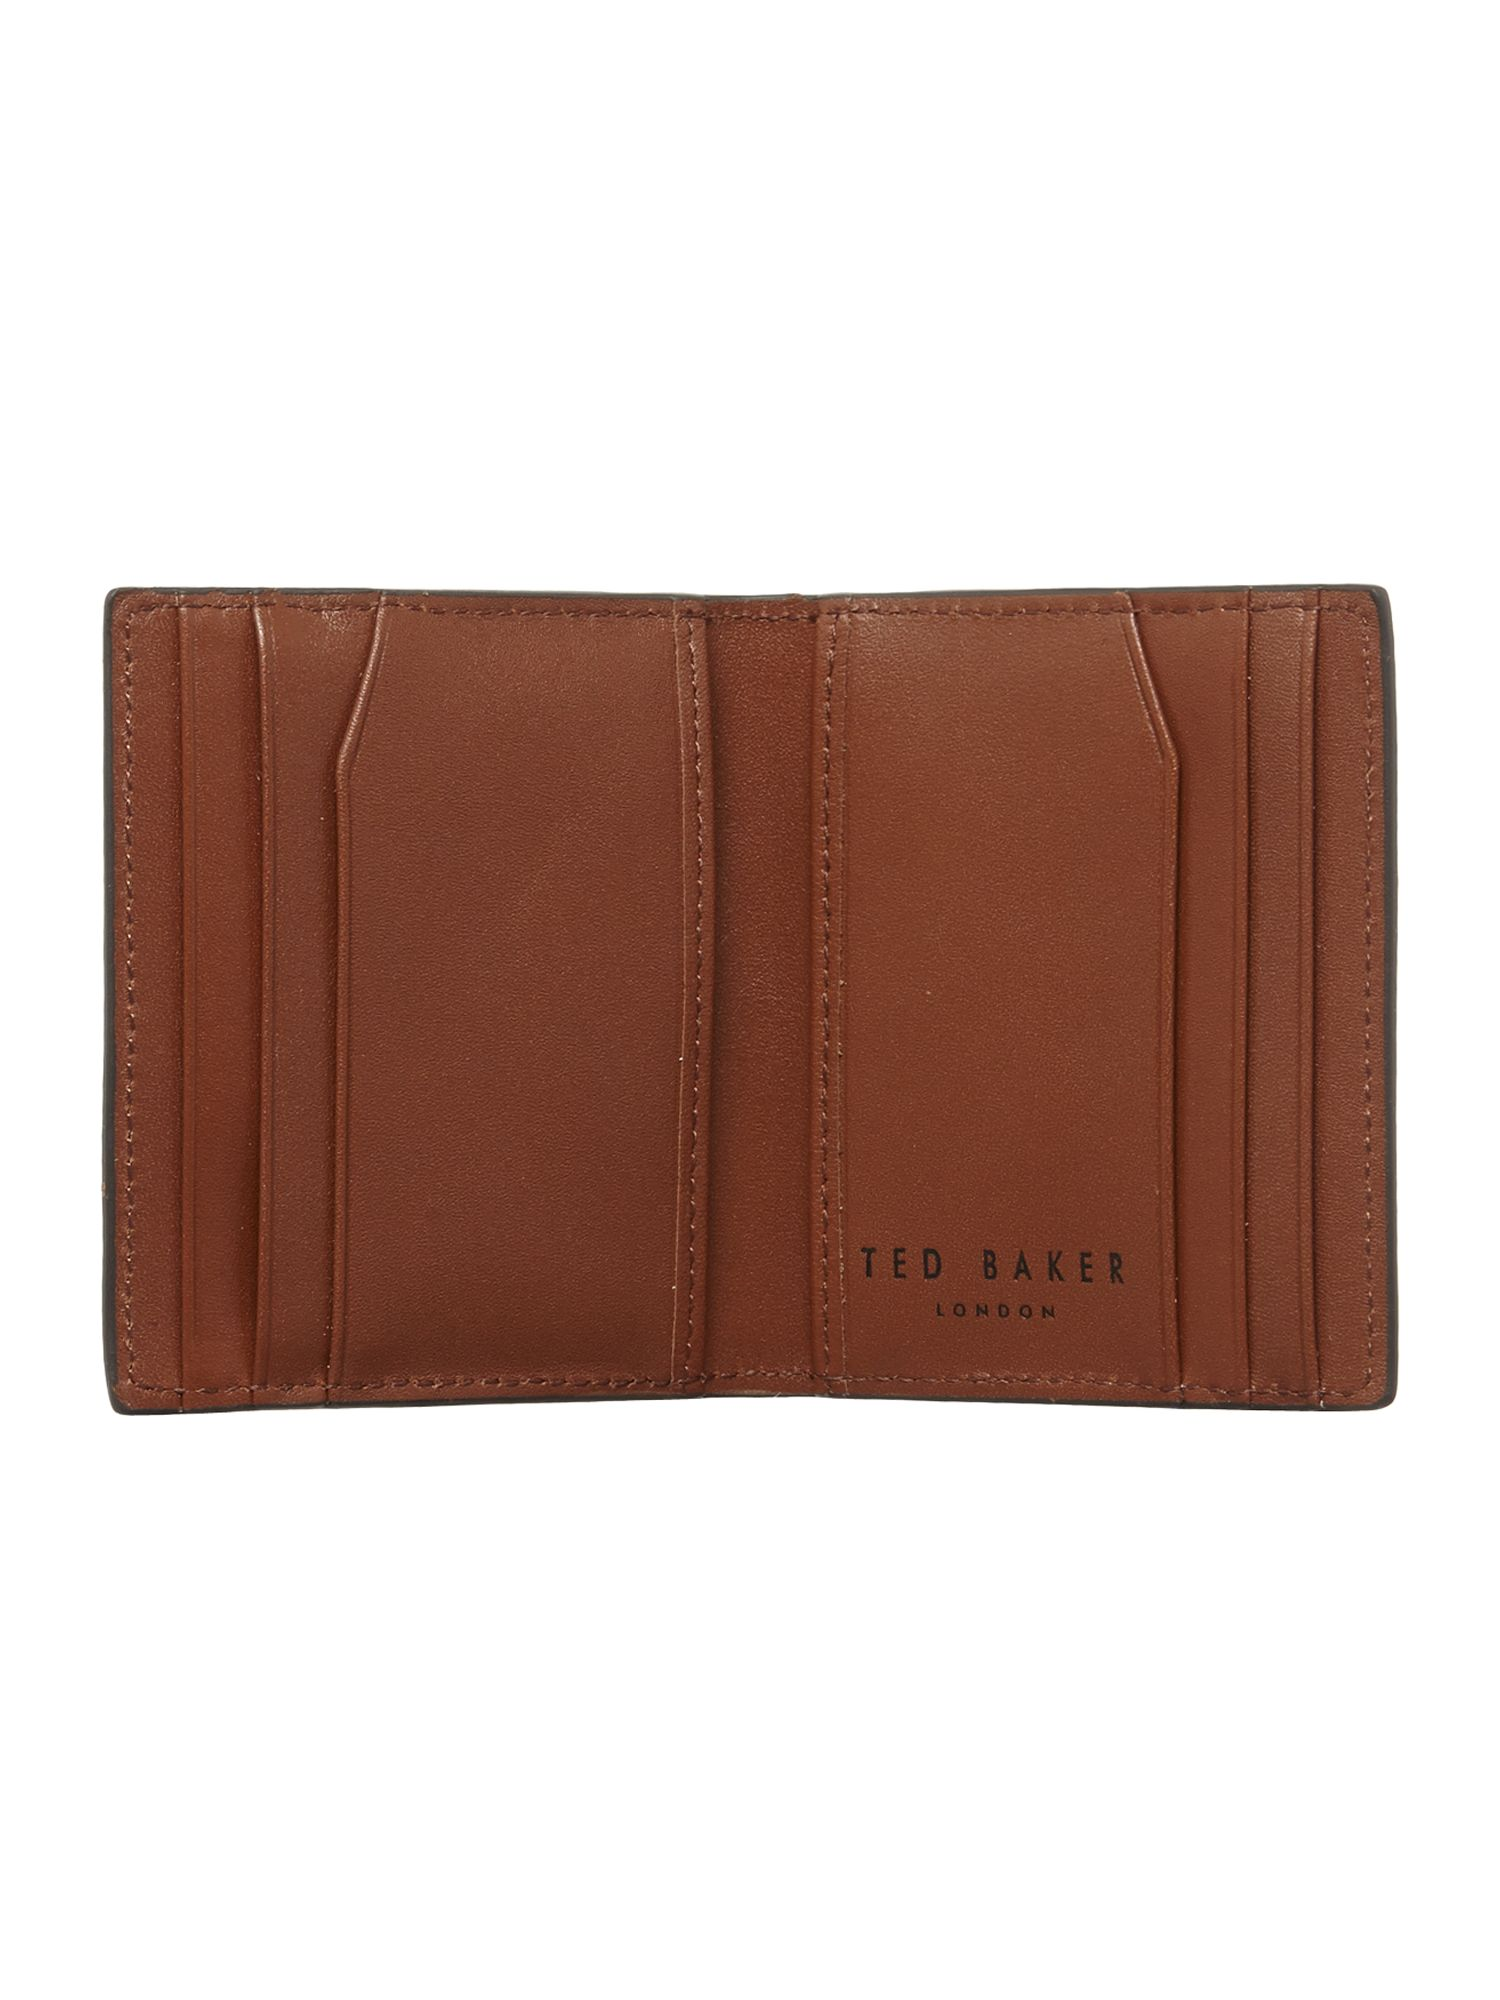 Broguin leather small bifold wallet